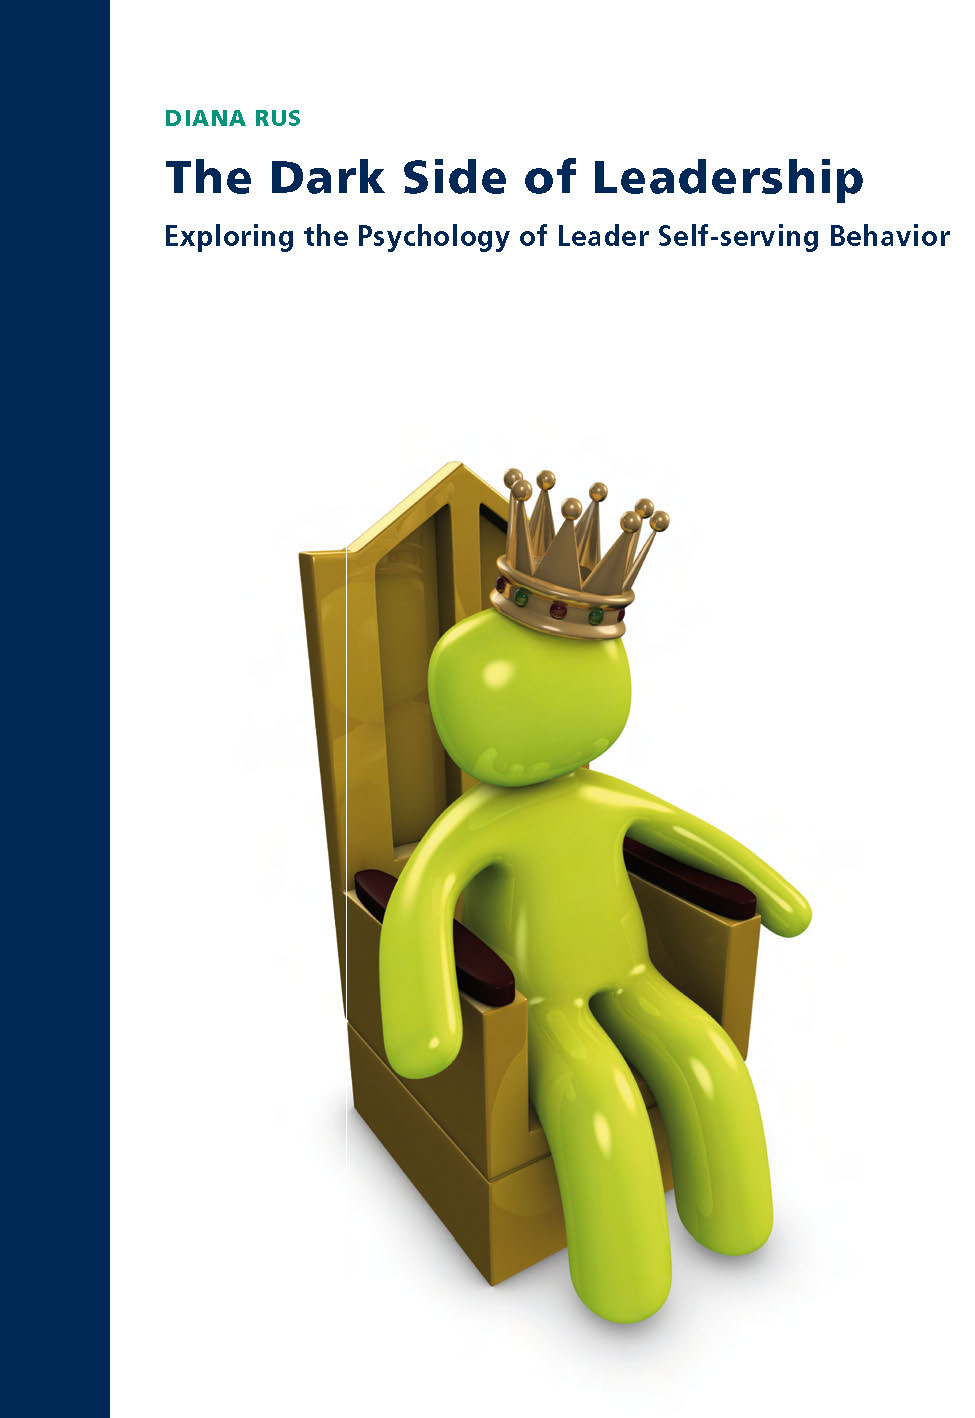 The Dark Side of Leadership: Exploring the Psychology of Leader Self-serving Behavior